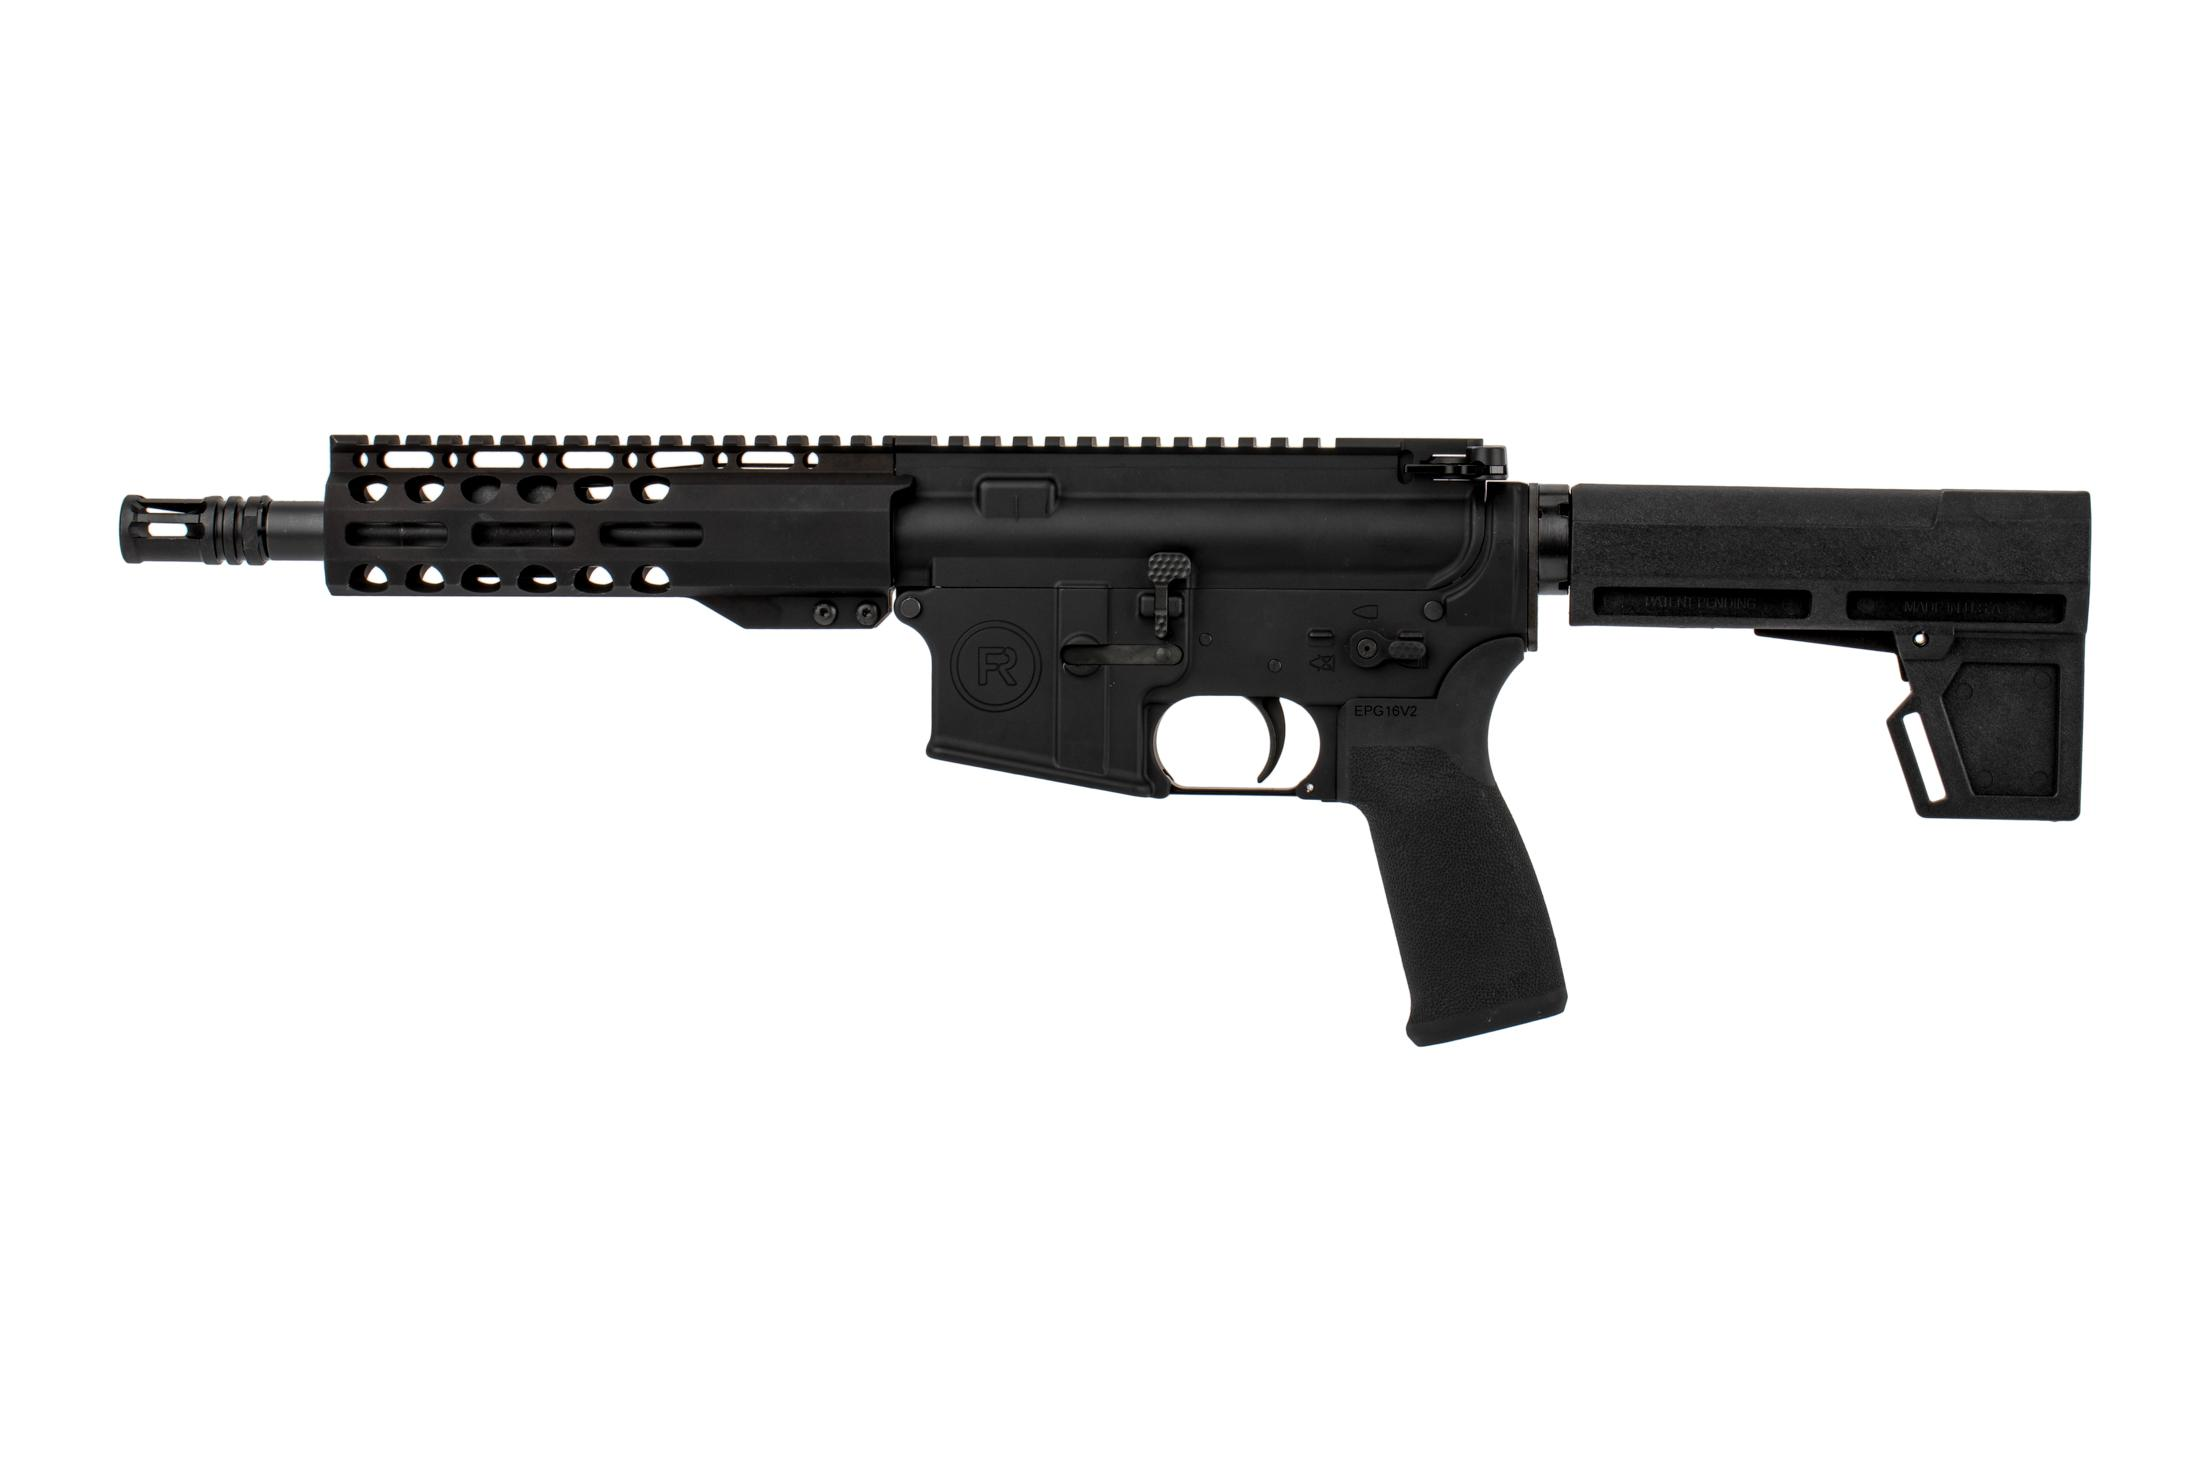 The Radical Firearms 8.5 inch 300 Blackout pistol features a pistol-length gas system